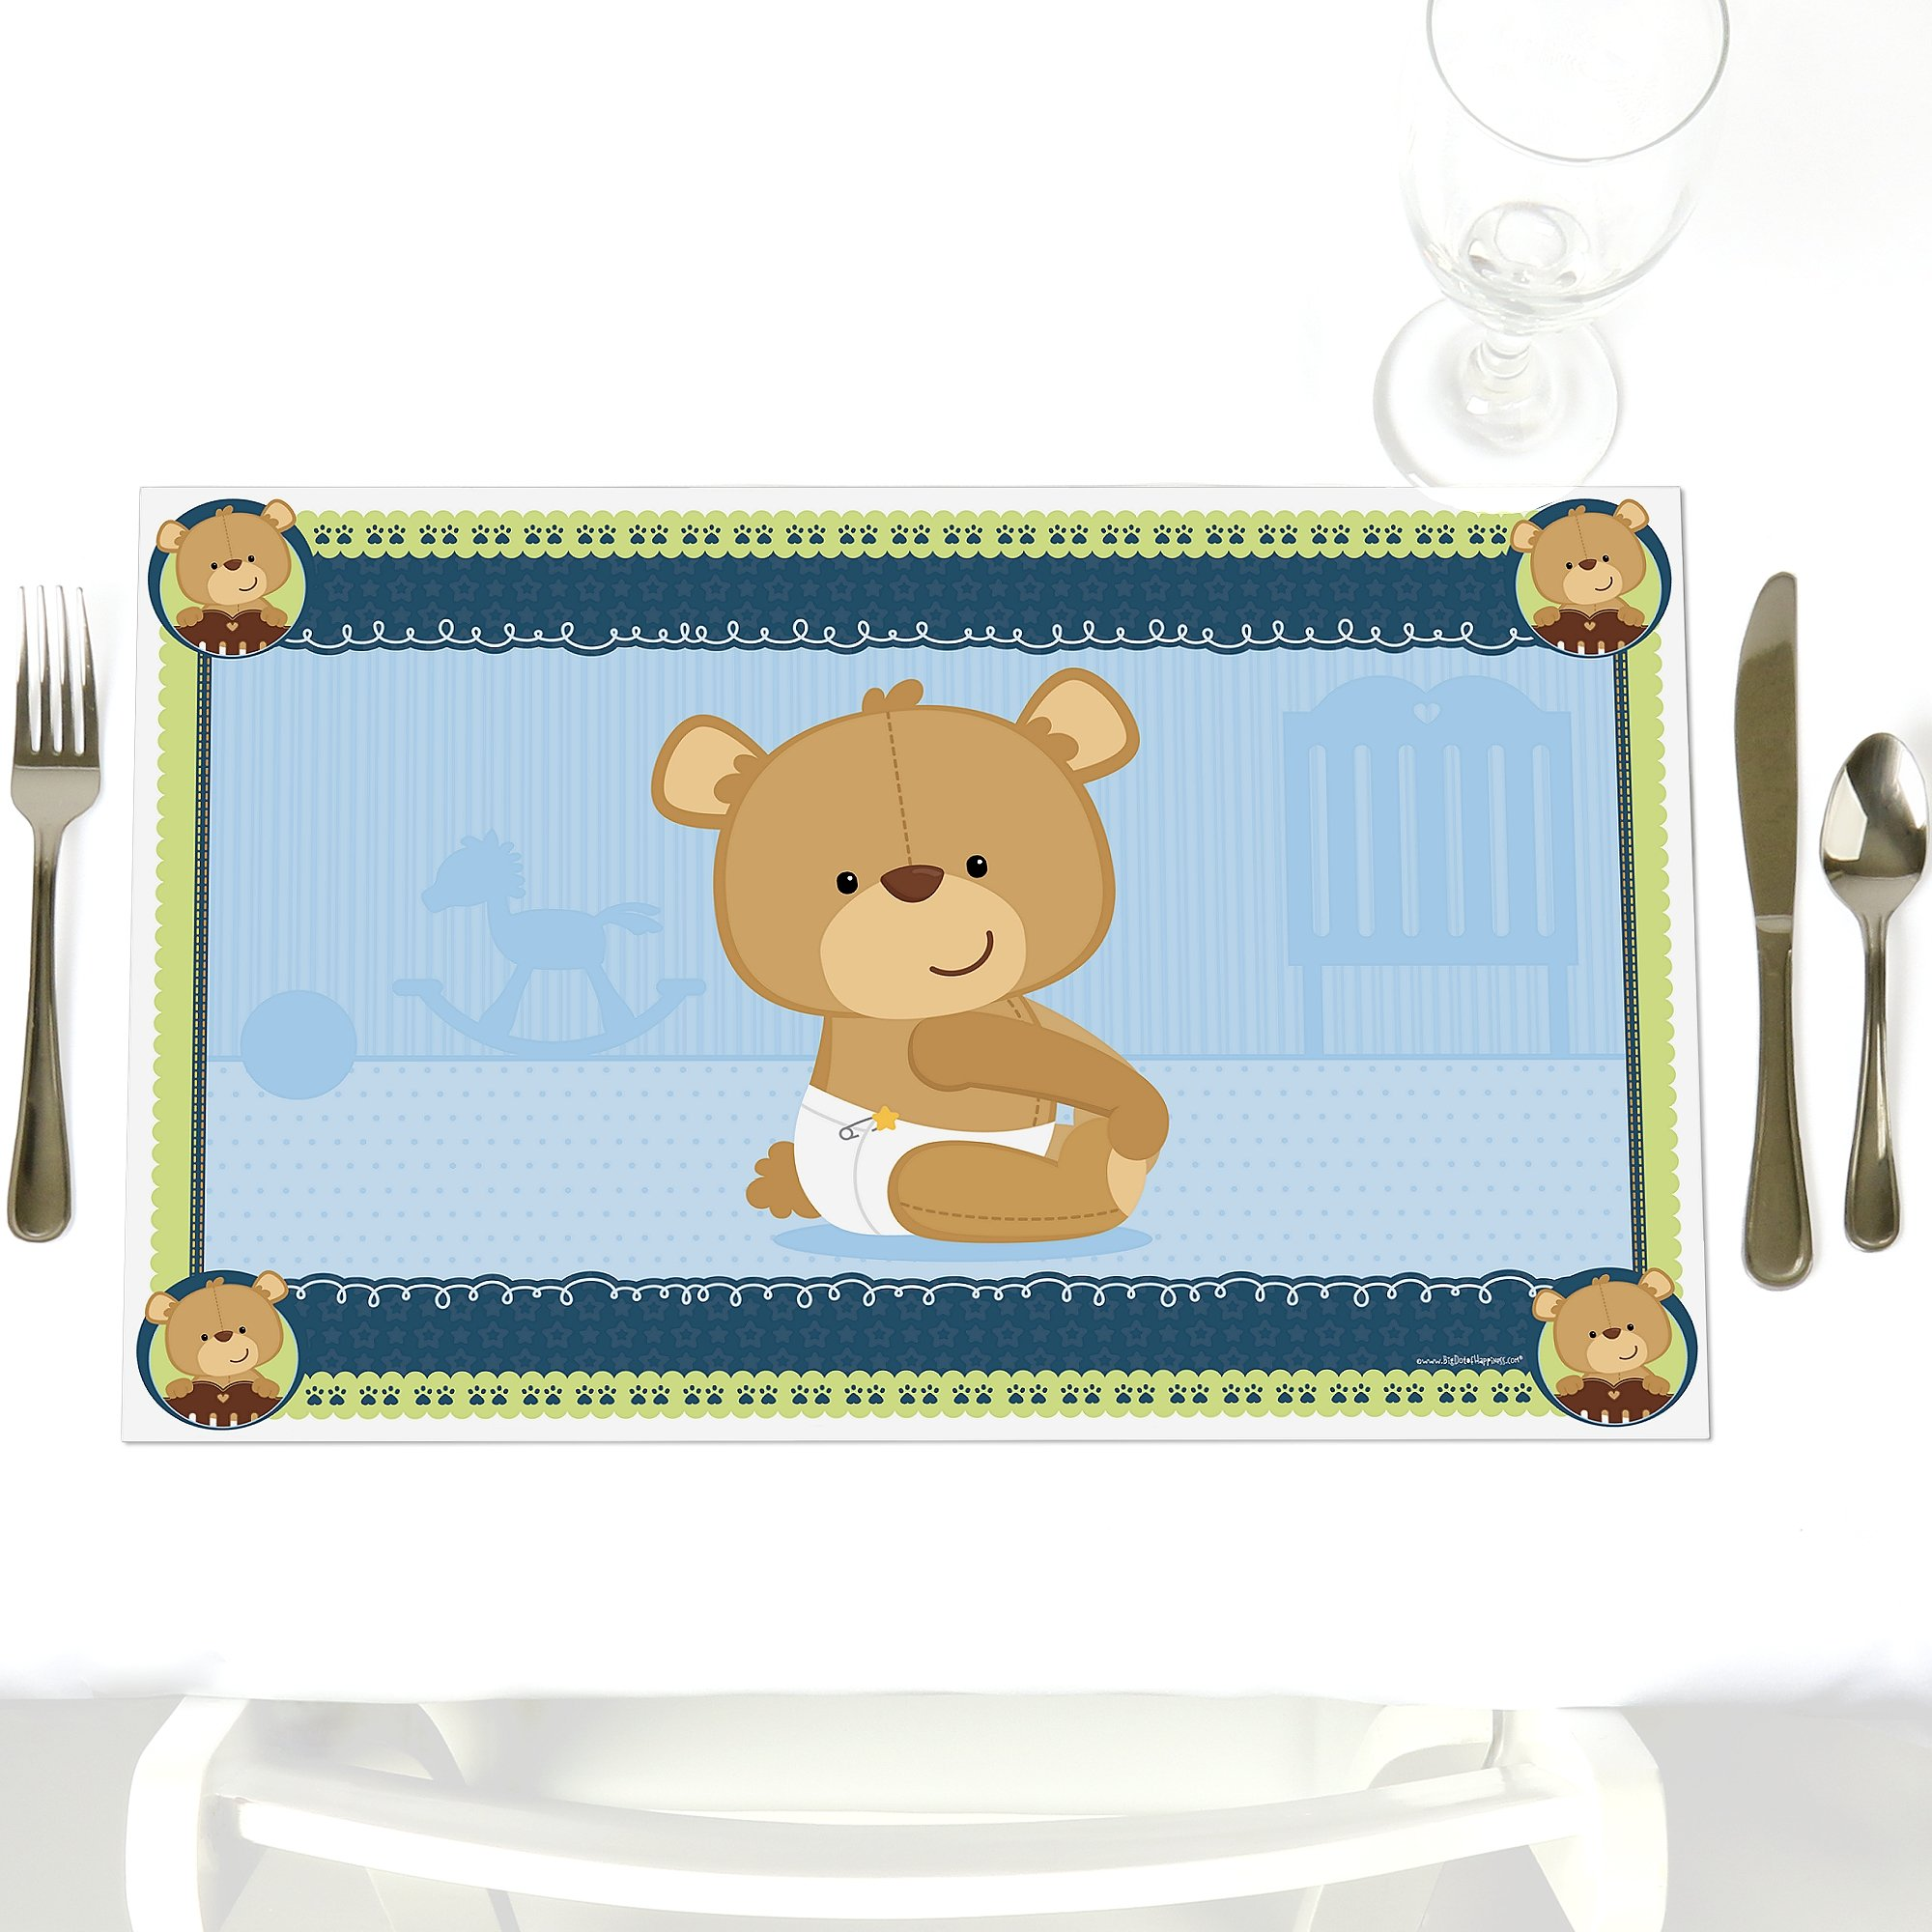 Boy Baby Teddy Bear - Party Table Decorations - Baby Shower or Birthday Party Placemats - Set of 12